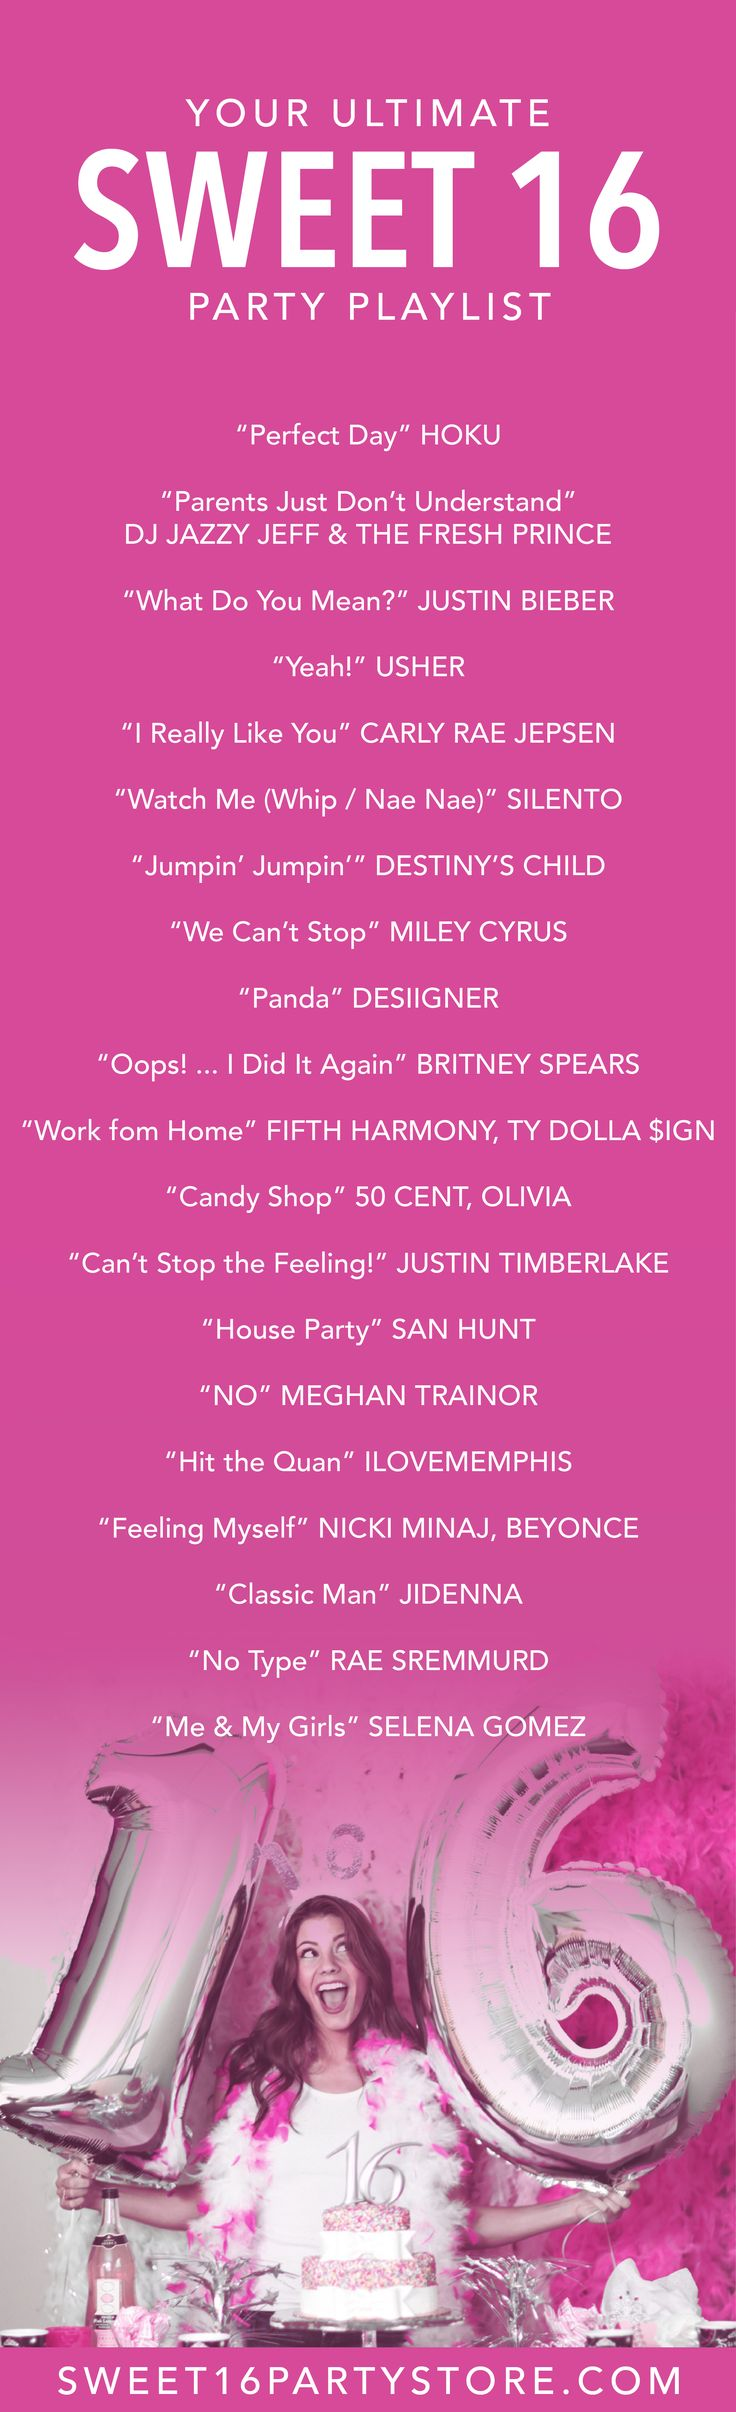 The ULTIMATE Sweet 16 Party Playlist from Sweet 16 Party Store!                                                                                                                                                                                 More